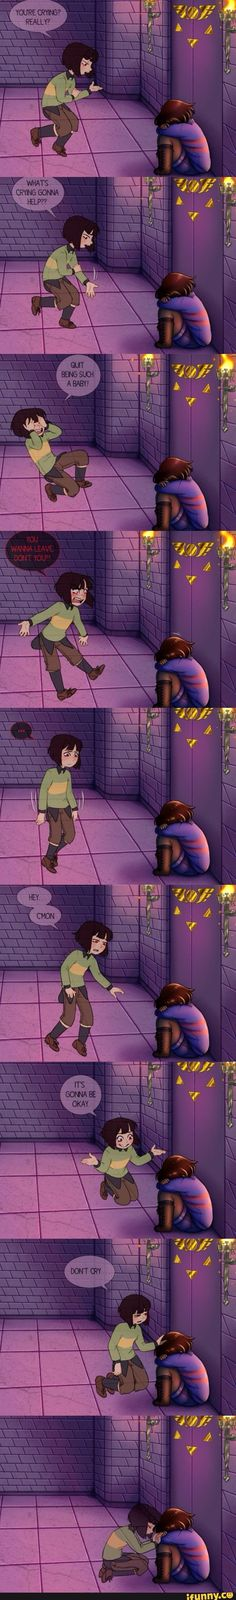 undertale, charisk, chara, frisk